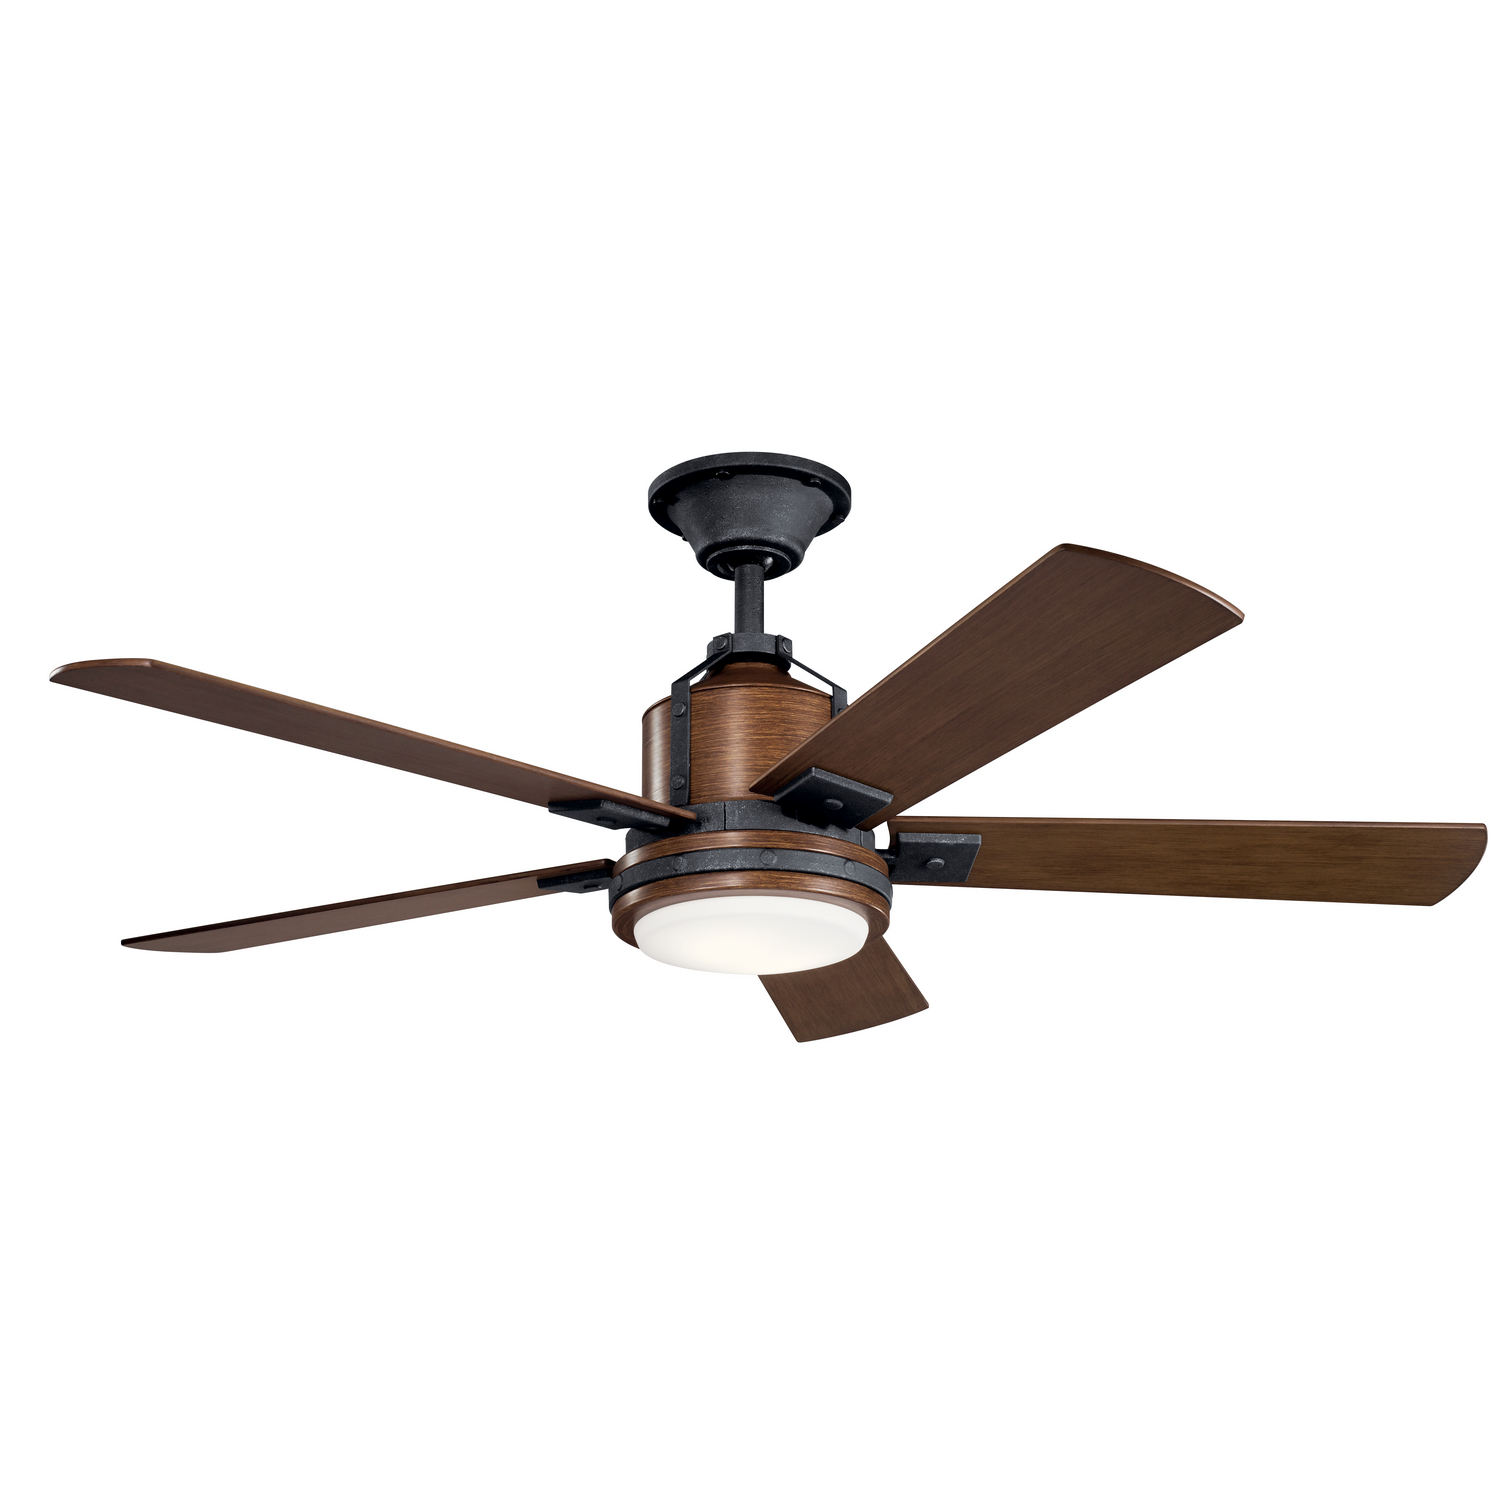 52 inchCeiling Fan from the Colerne collection by Kichler 300052DBK